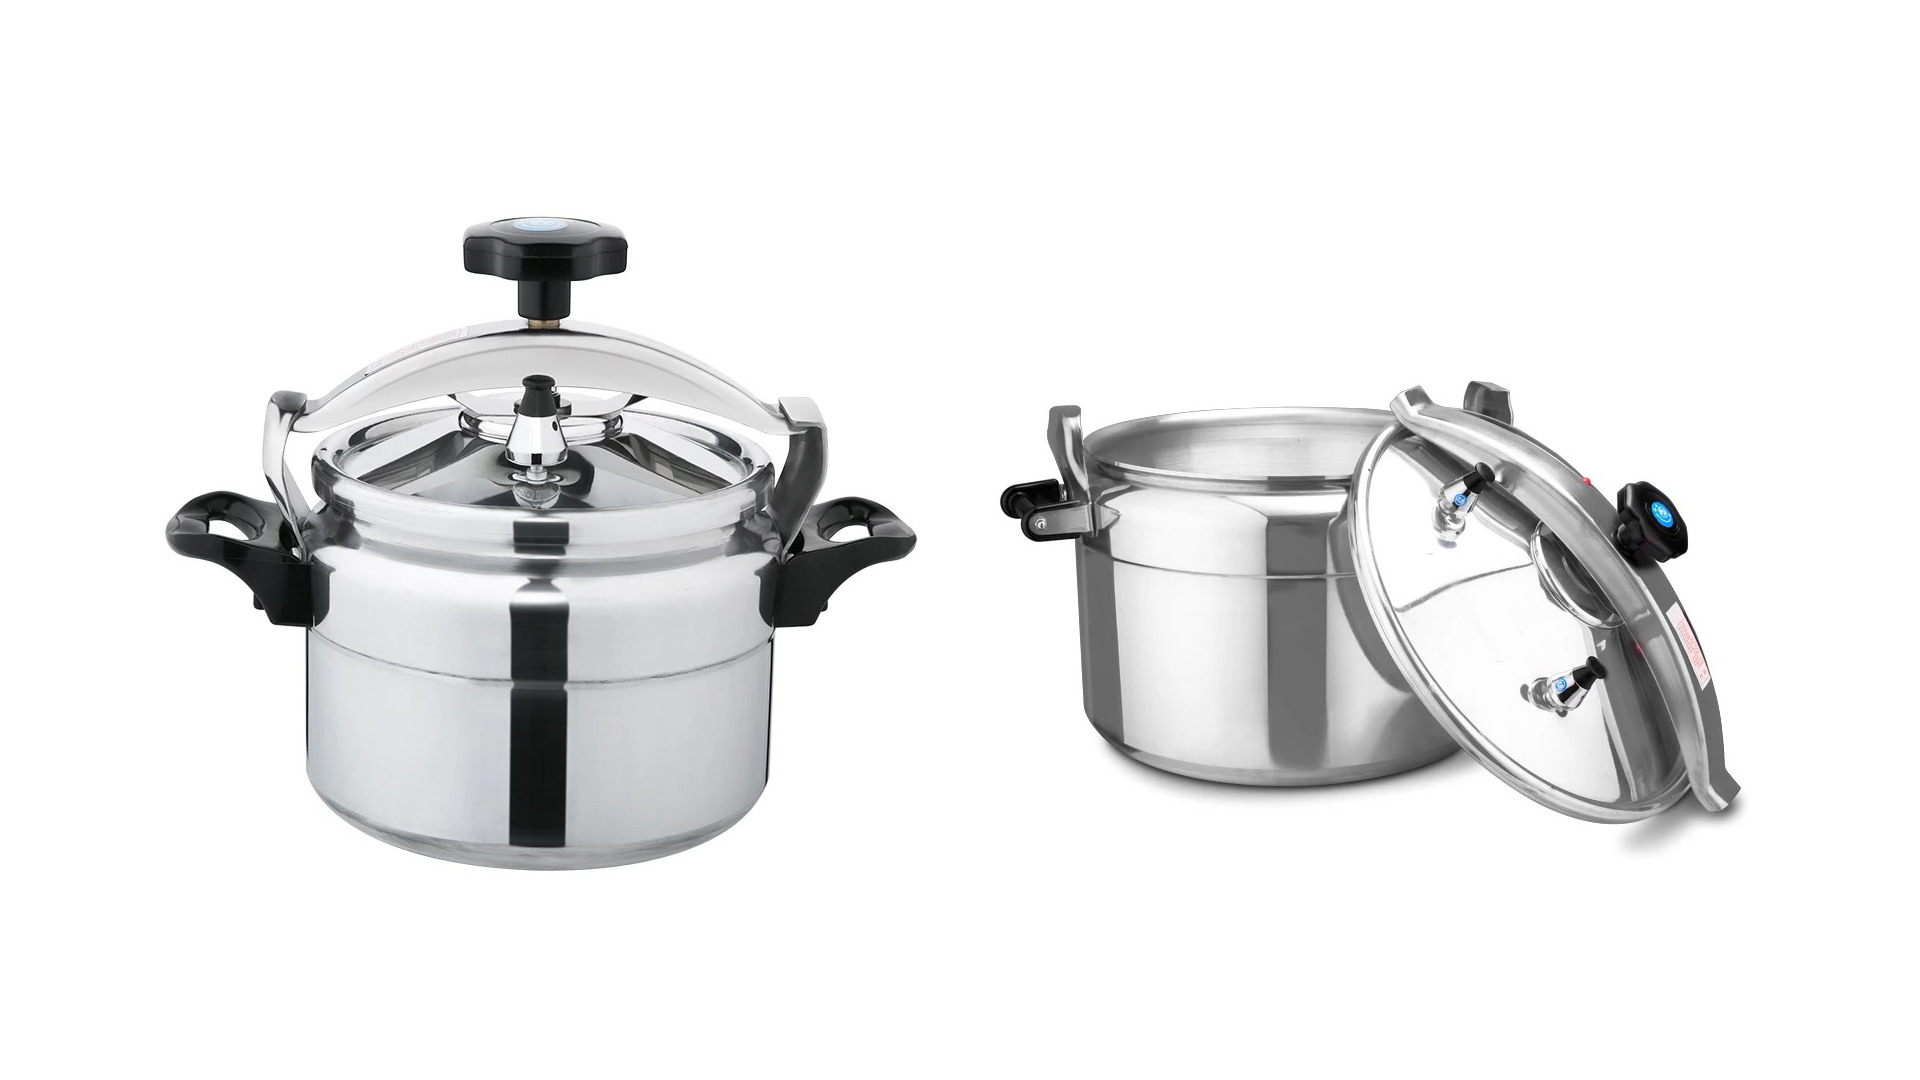 7L aluminum alloy gas pressure cooker home use | Commercial Kitchen Equipment Manufacturer - Pressure cooker | factory